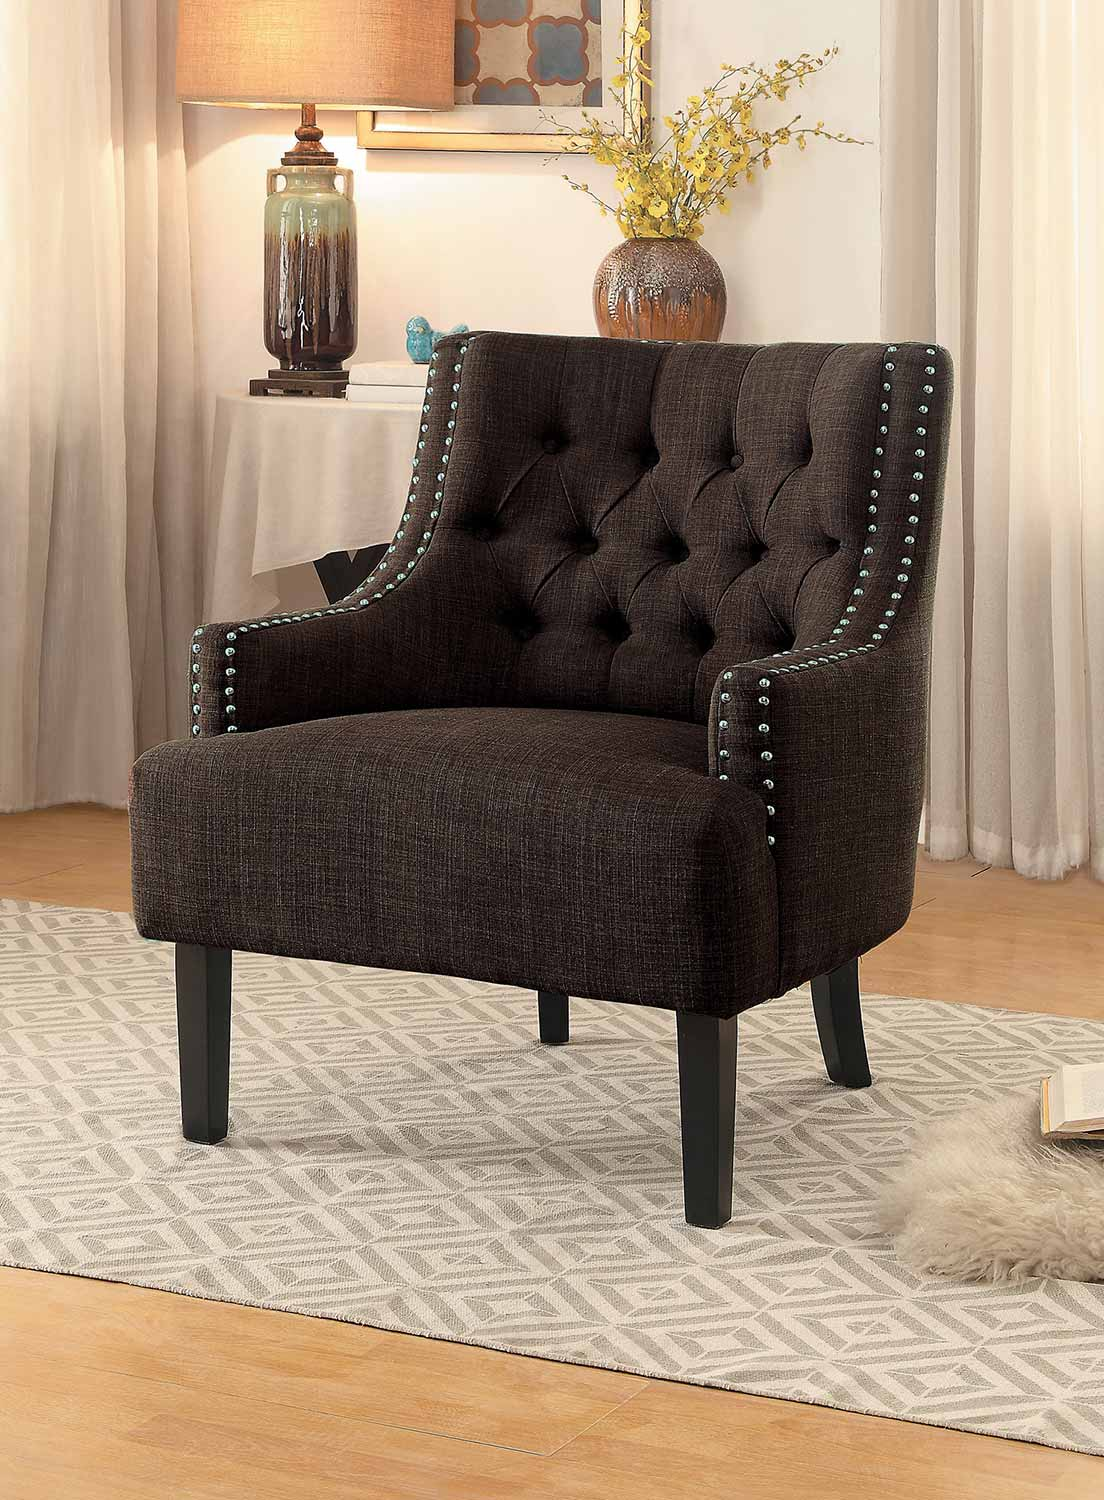 Homelegance Charisma Accent Chair Chocolate 1194ch At